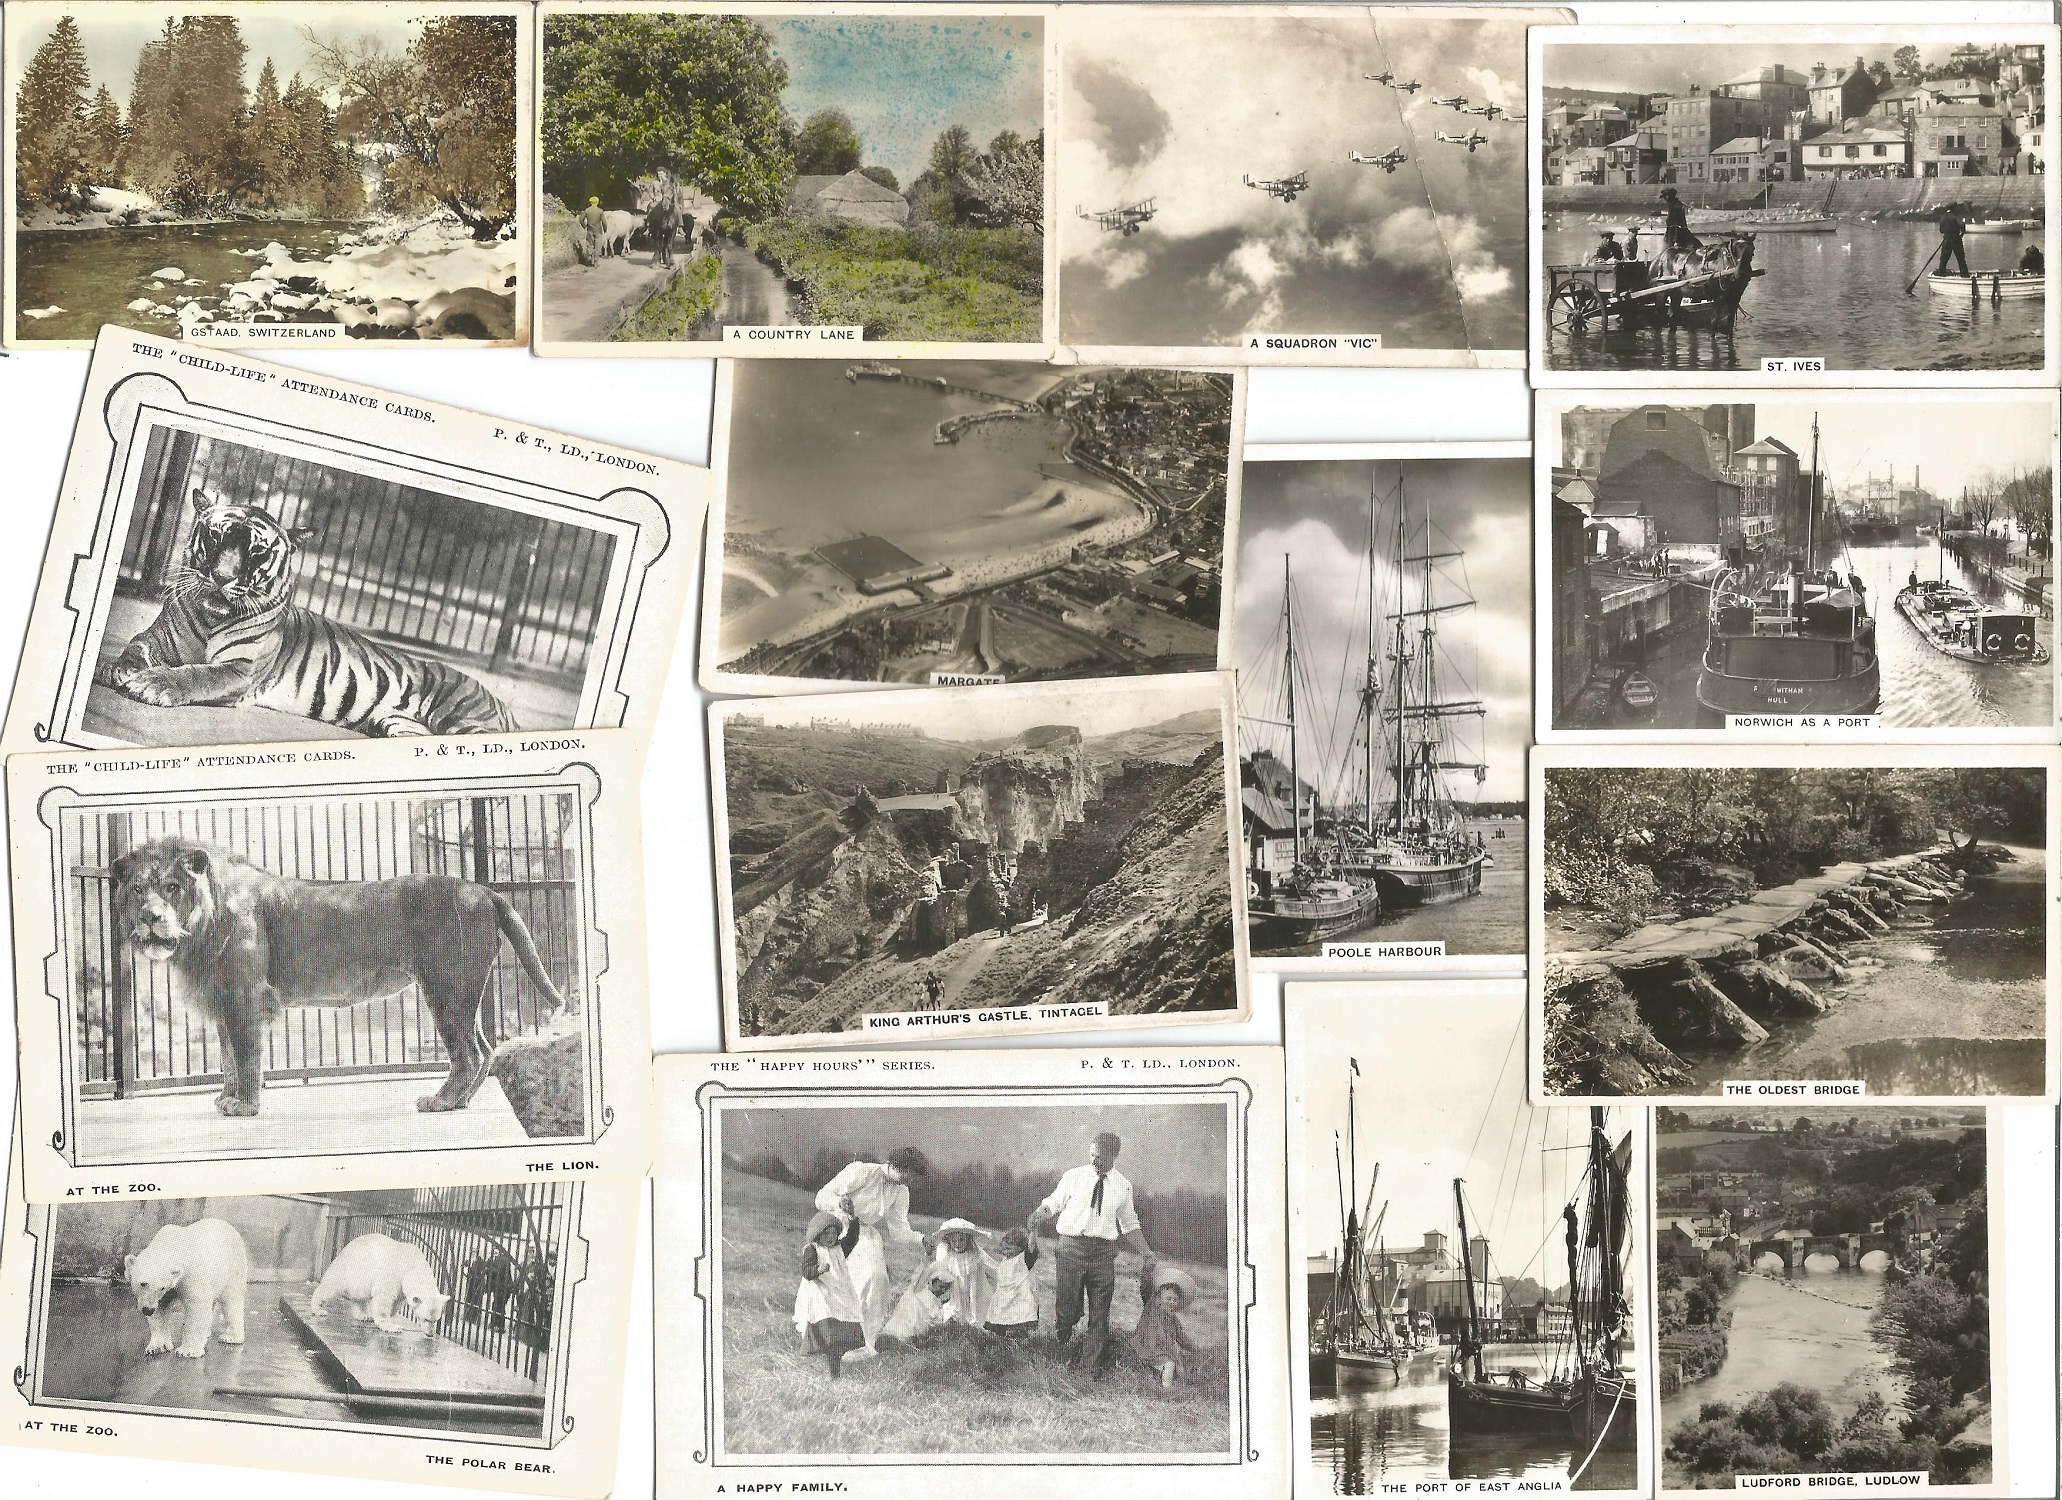 Cigarette card collection. 6 pages of Senior service black and white photos. Good condition. We